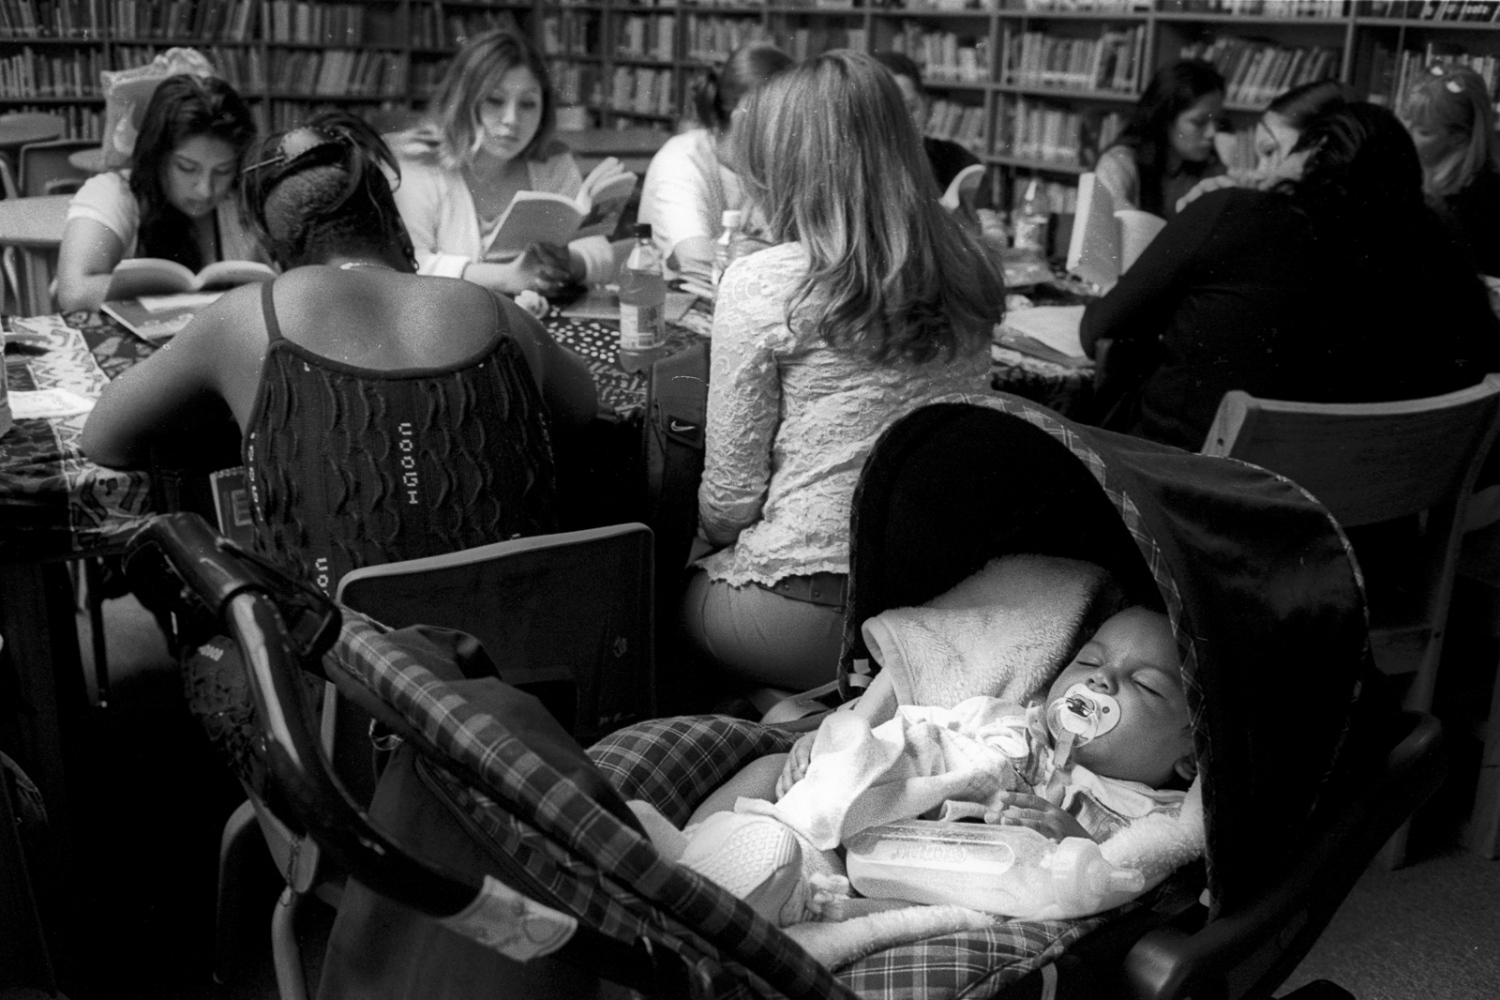 Karen's daughter naps during a girls-only writing class in the school library. School policy was that students were not supposed to bring their to class but it happened fairly often.